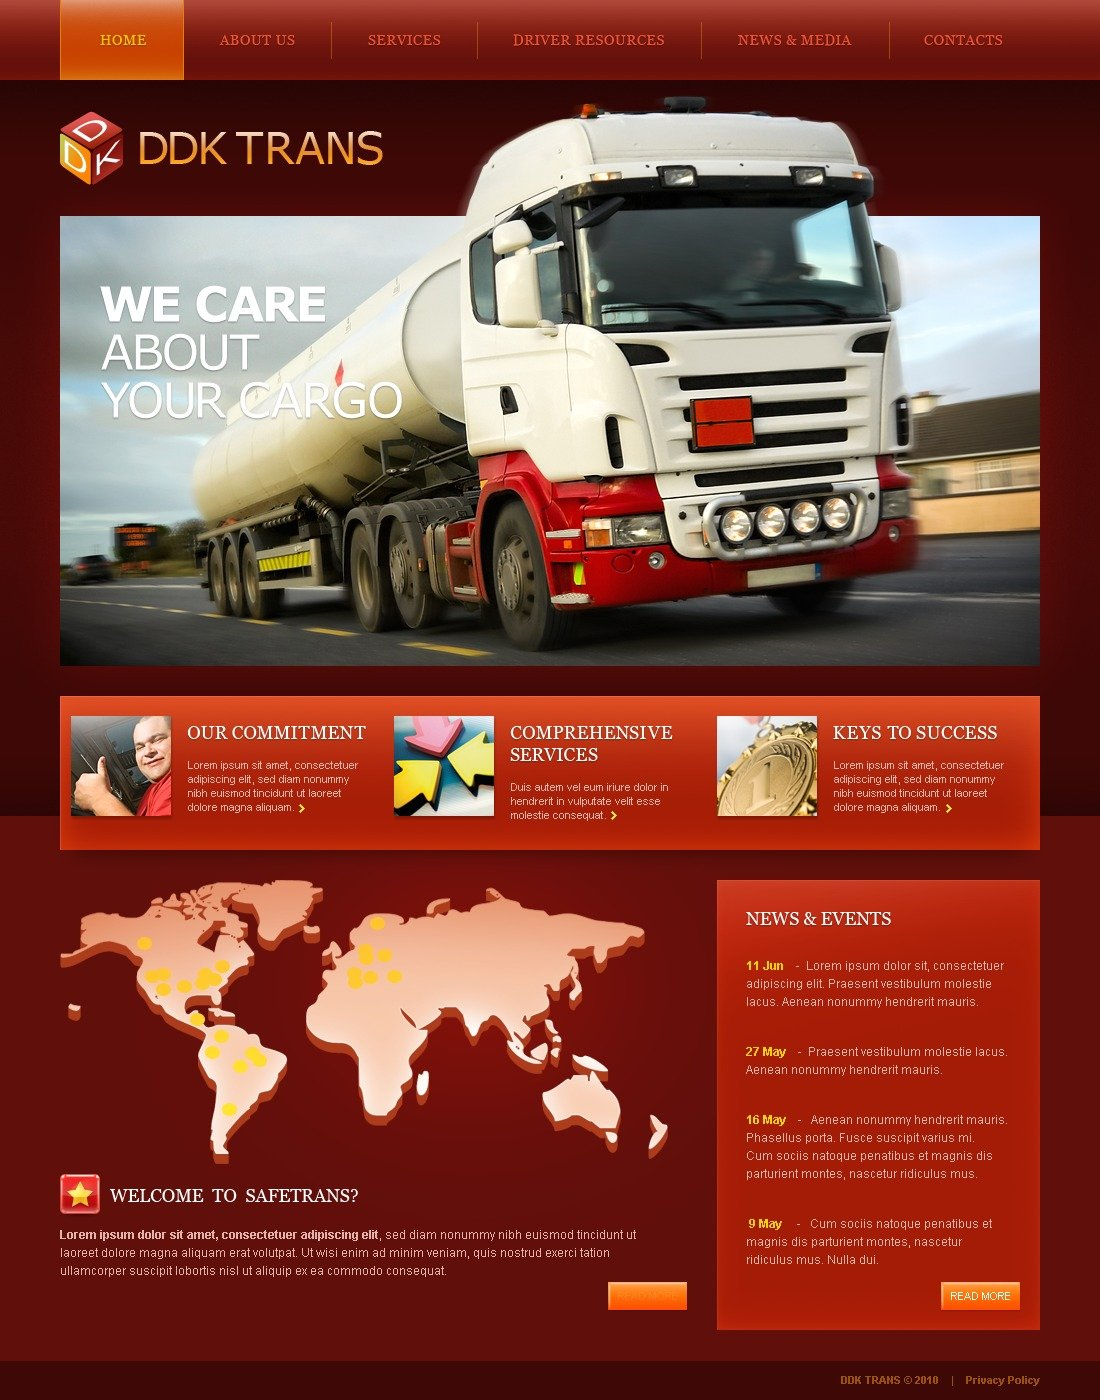 The DDK Trans Transportation Company PSD Design 54244, one of the best PSD templates of its kind (transportation, flash 8, wide), also known as DDK Trans transportation company PSD template, transport PSD template, fast PSD template, reliability PSD template, safety PSD template, express PSD template, exportation PSD template, trucking PSD template, work PSD template, team PSD template, profile PSD template, support PSD template, customer PSD template, clients solutions PSD template, cars PSD template, cargo PSD template, services PSD template, shipment PSD template, rates PSD template, prices PSD template, offer PSD template, standards PSD template, vehicle PSD template, destination PSD template, trucking PSD template, sea PSD template, air PSD template, help and related with DDK Trans transportation company, transport, fast, reliability, safety, express, exportation, trucking, work, team, profile, support, customer, clients solutions, cars, cargo, services, shipment, rates, prices, offer, standards, vehicle, destination, trucking, sea, air, help, etc.